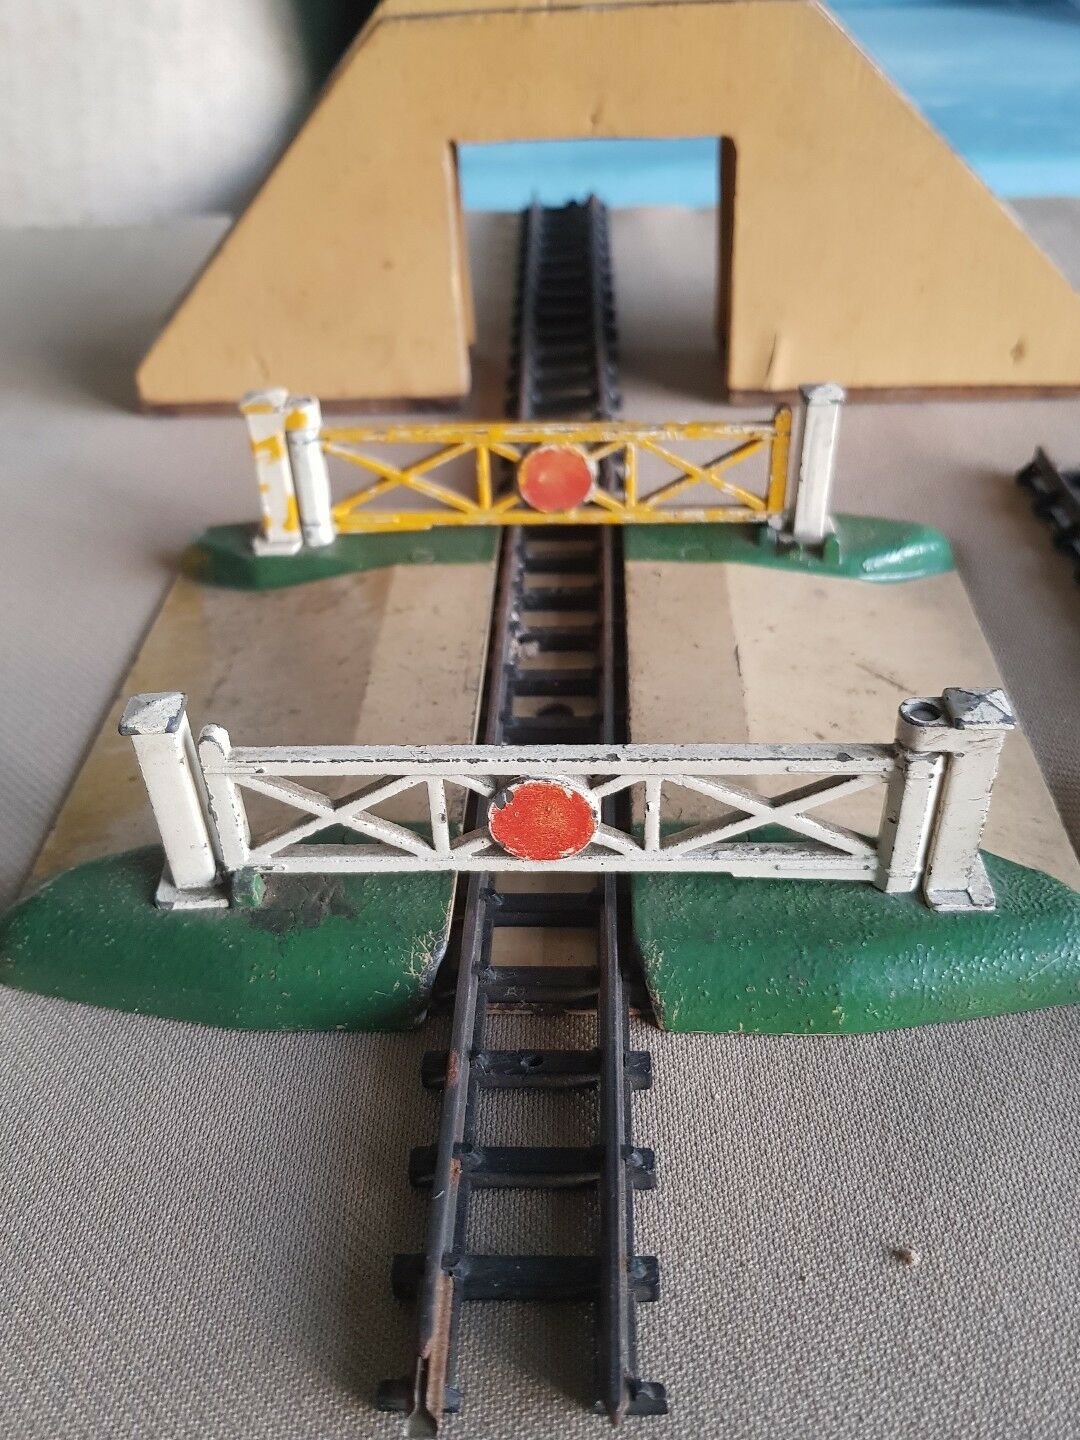 Hornby Hornby Hornby triang spares repair train track, steps, bridge eb8c0c